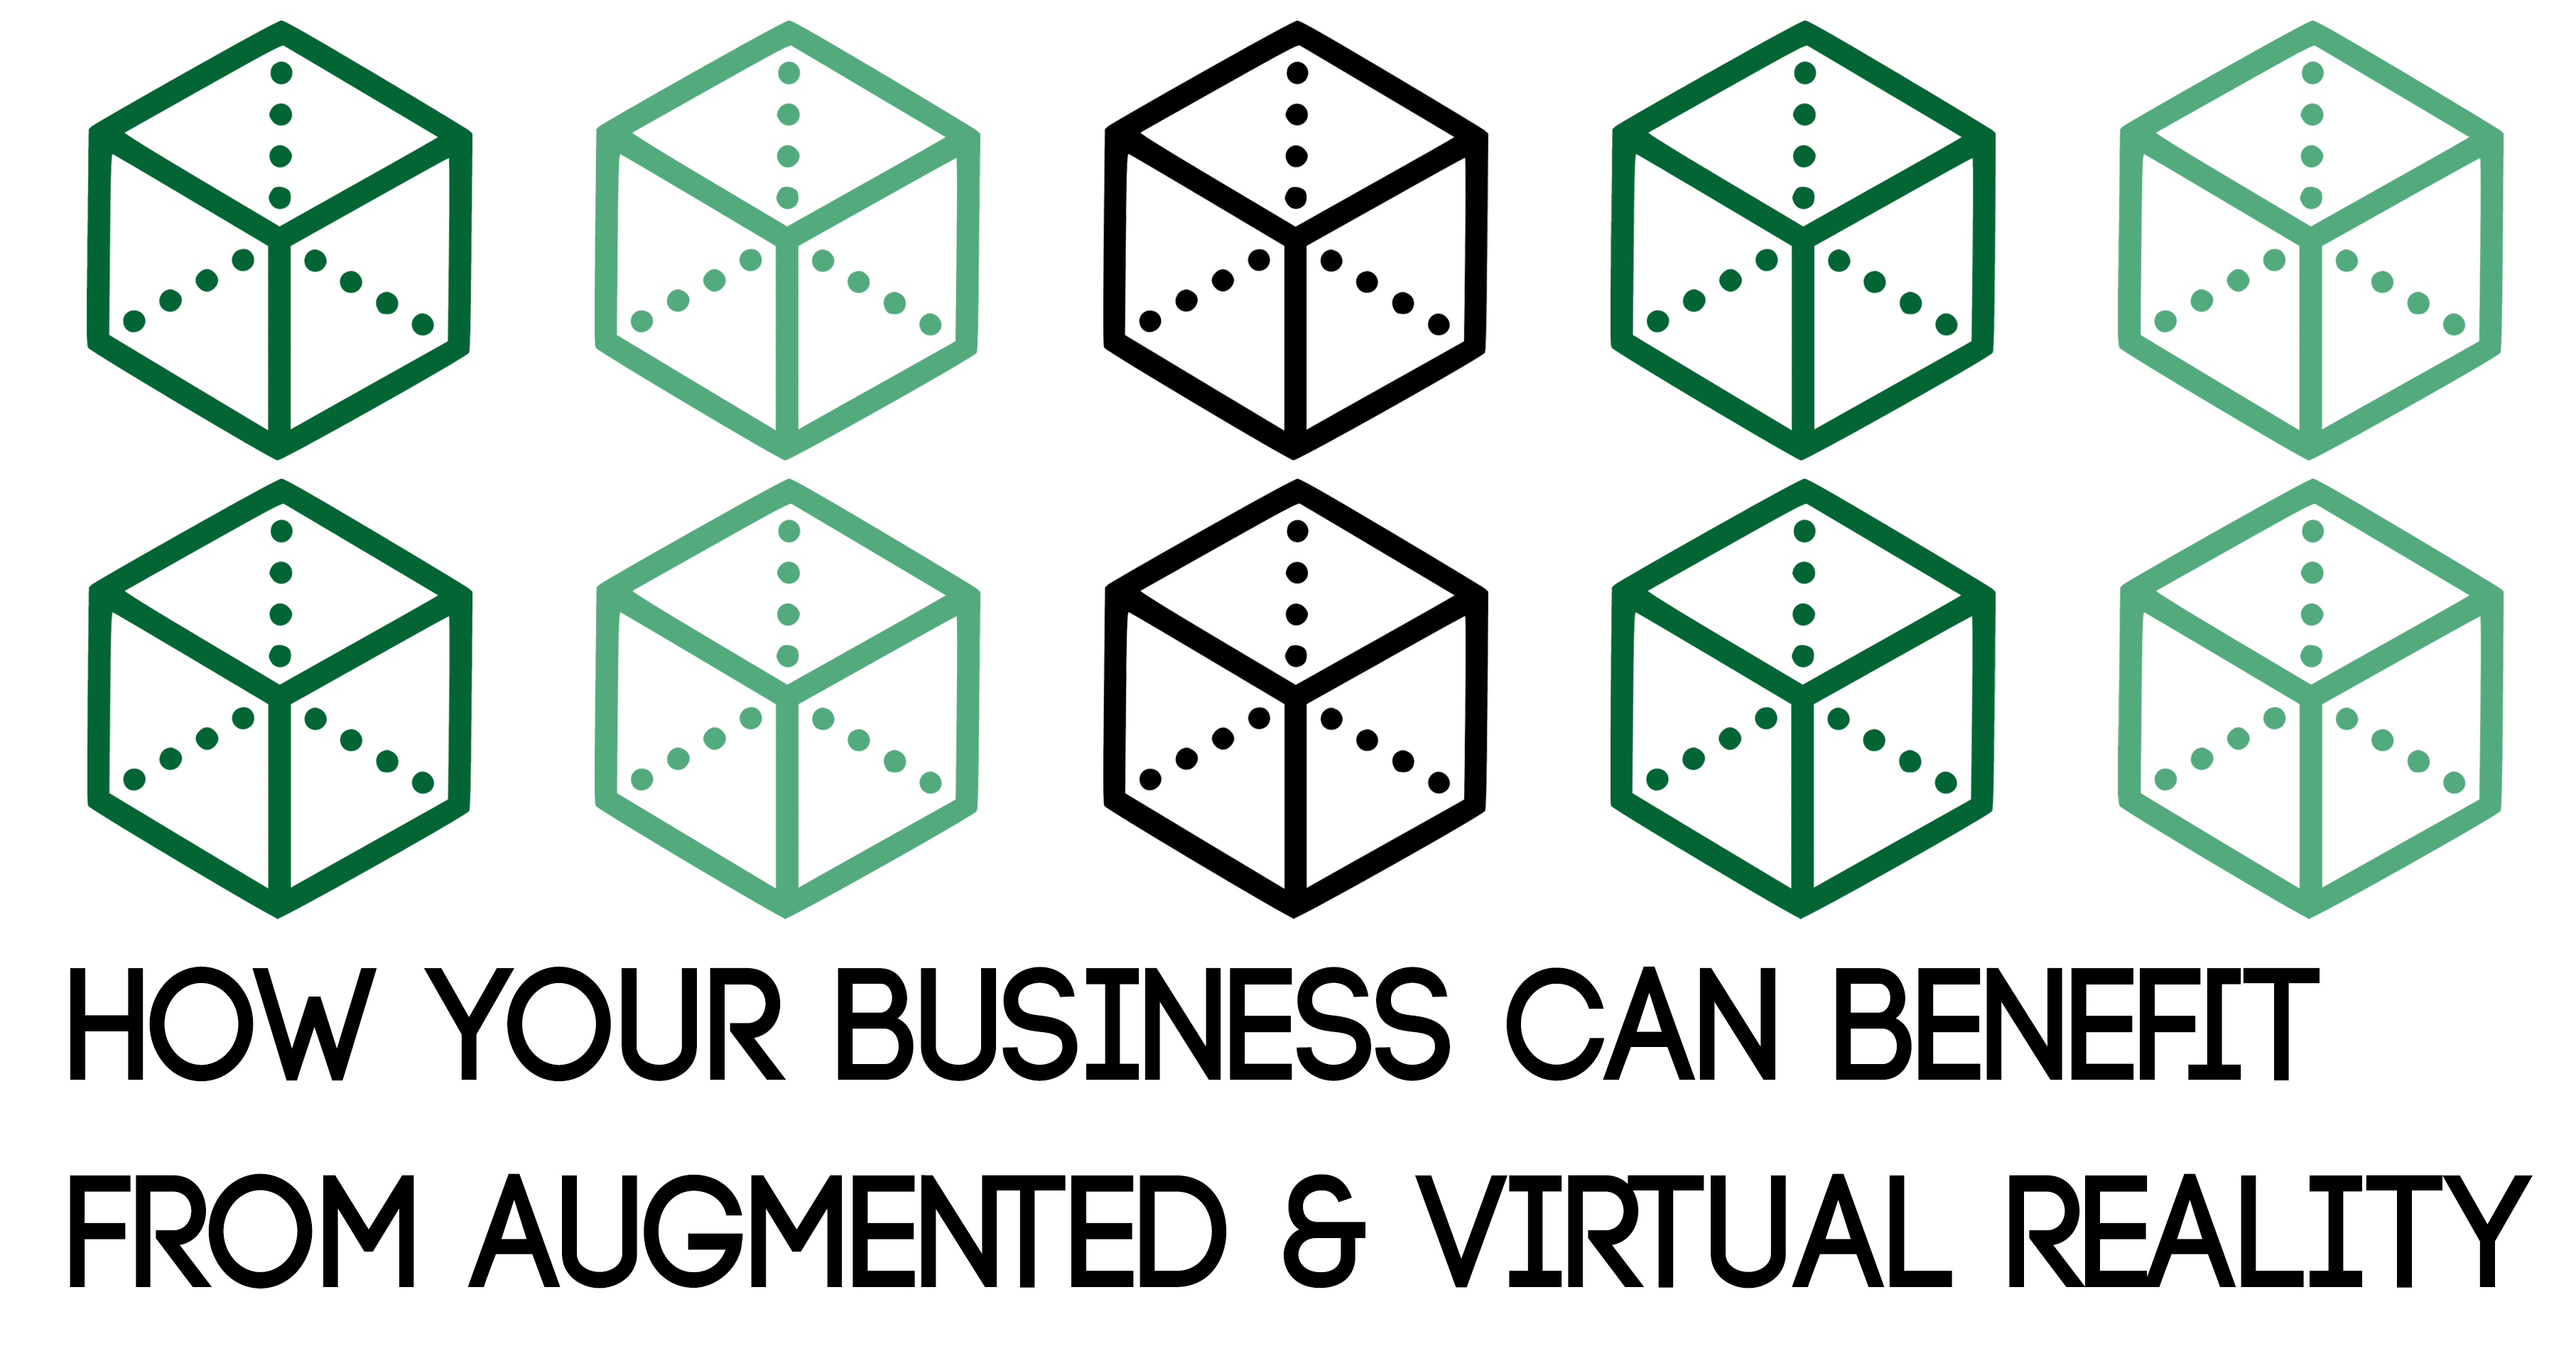 How Your Business Can Benefit from Augmented & Virtual Reality